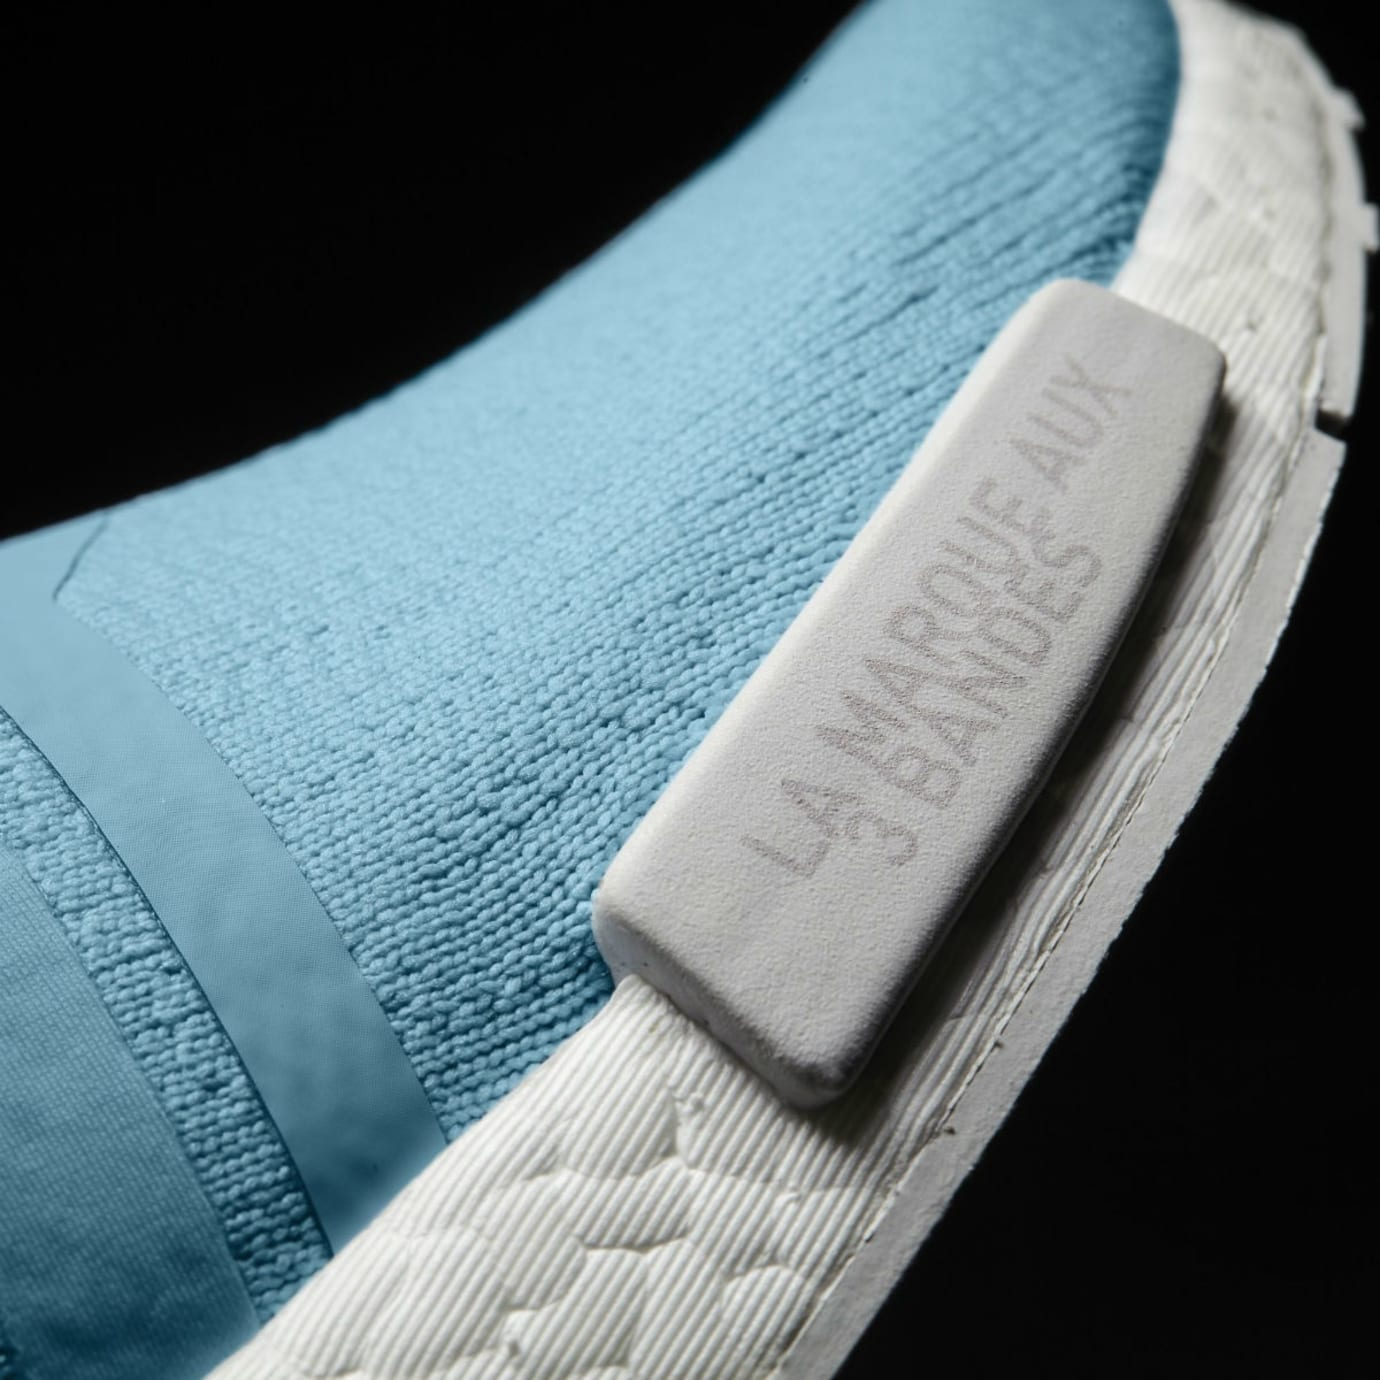 Adidas NMD R1 Primeknit Ice Blue Release Date Midsole BY8763